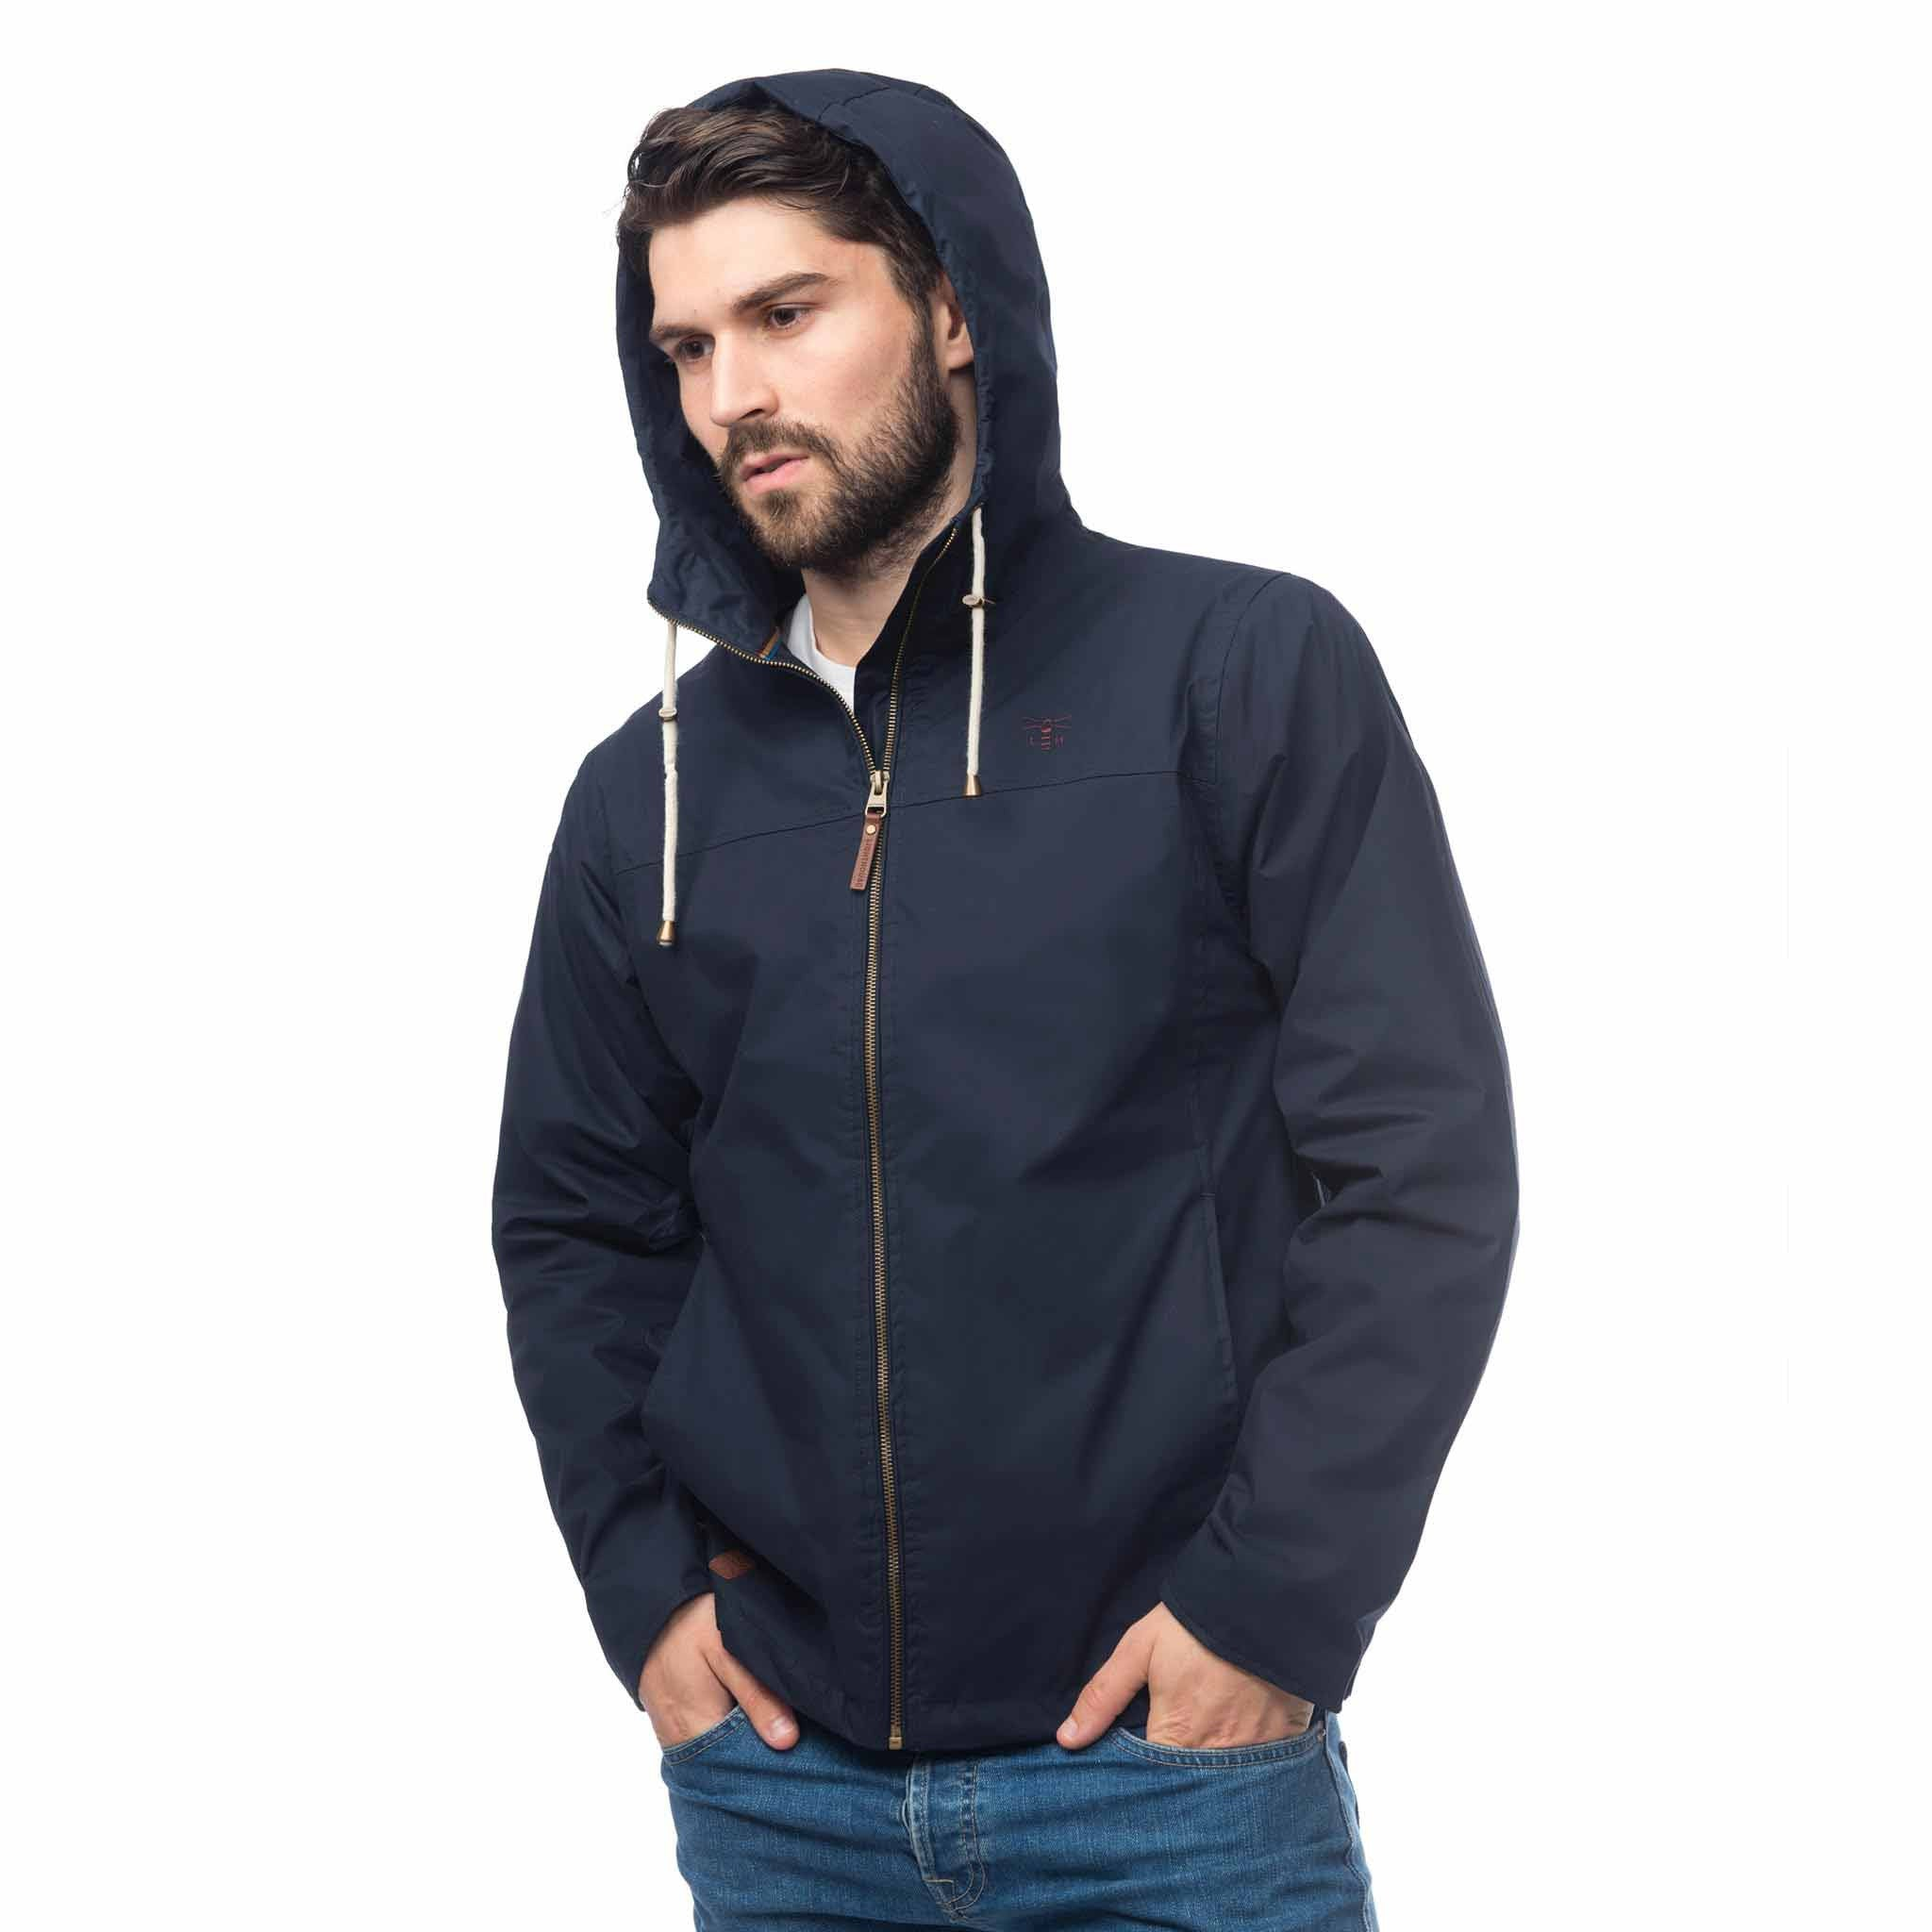 Lighthouse Mens Faroe Waterproof Jacket in Navy. Hood up. Zipped.